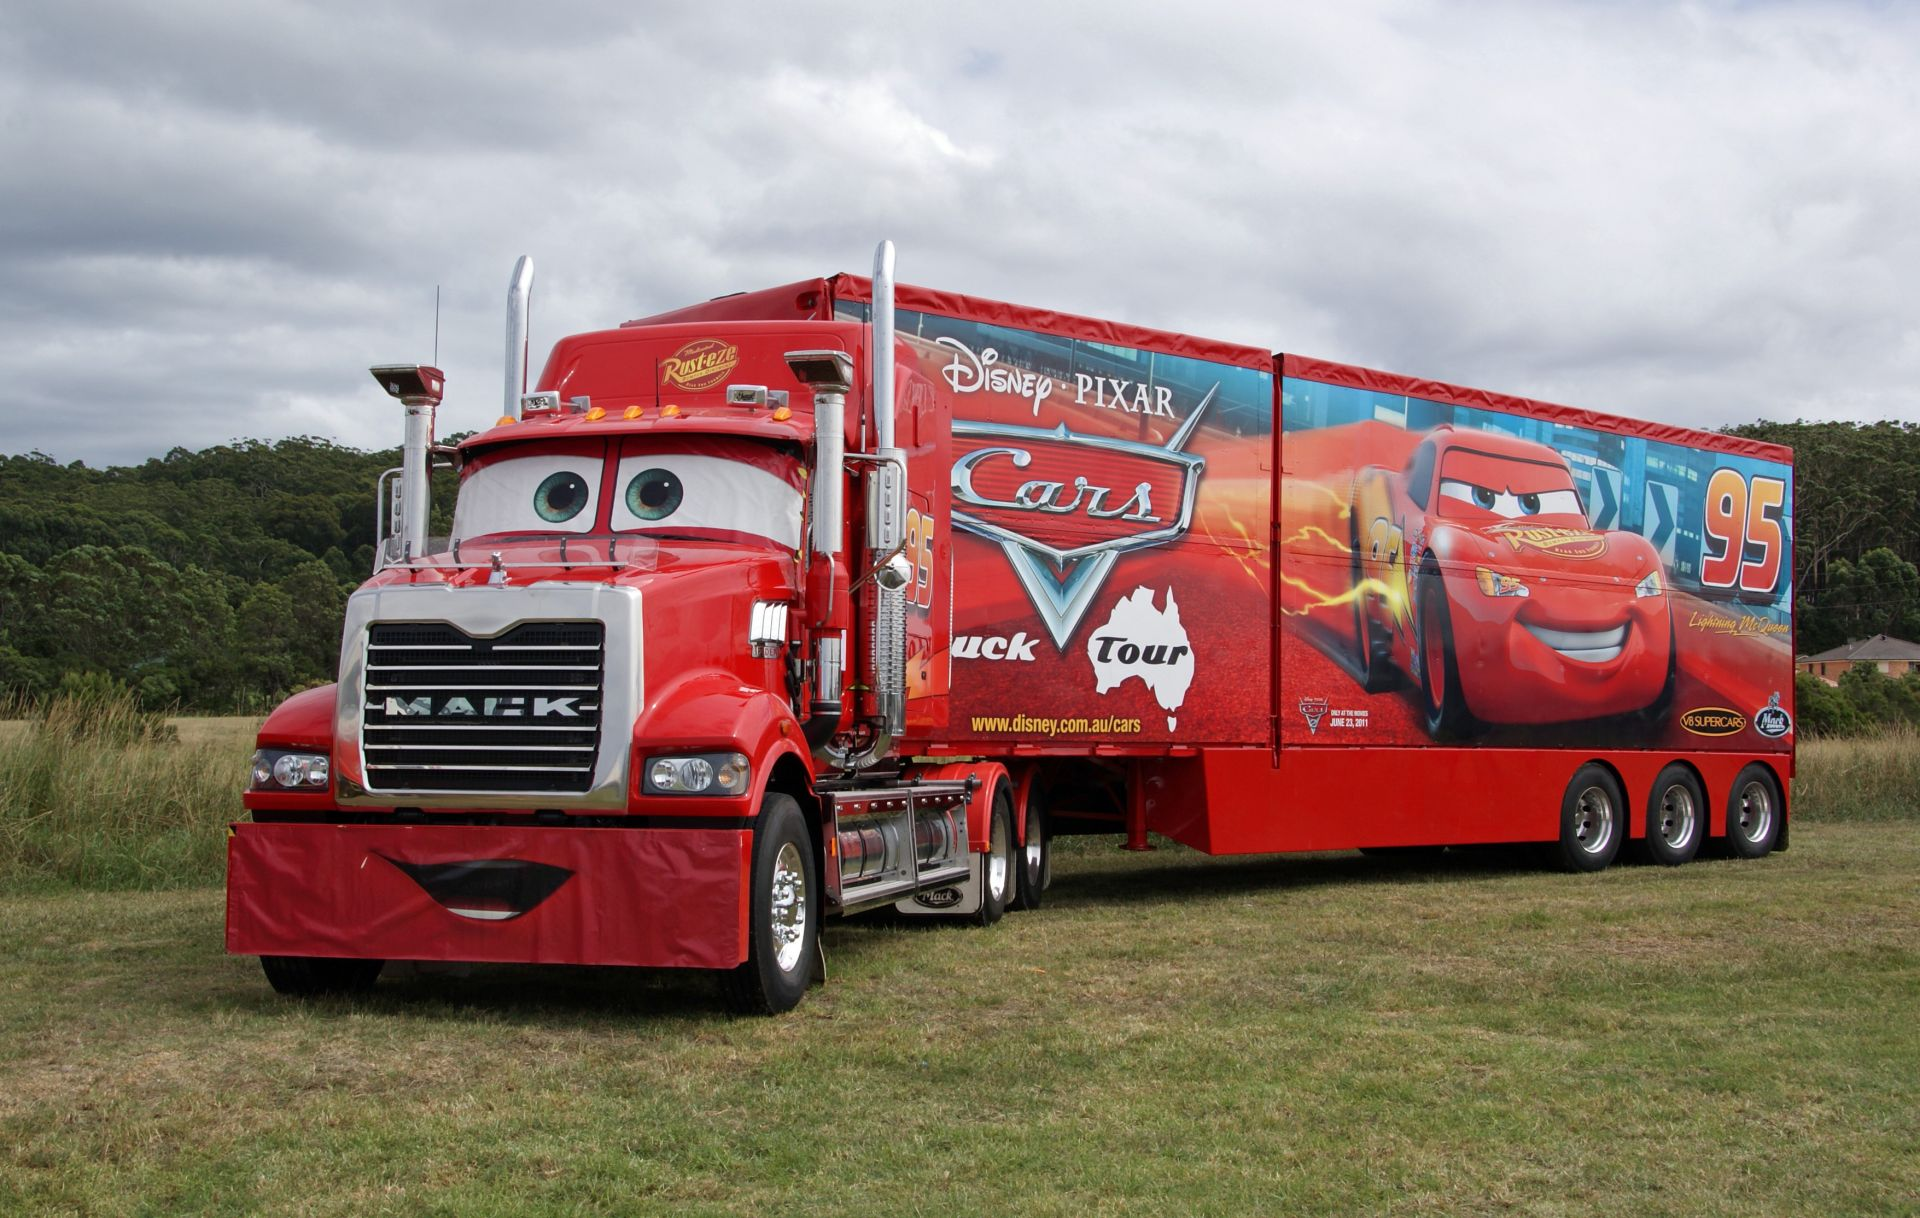 cars truck Mack tractor trailer truck red pixar